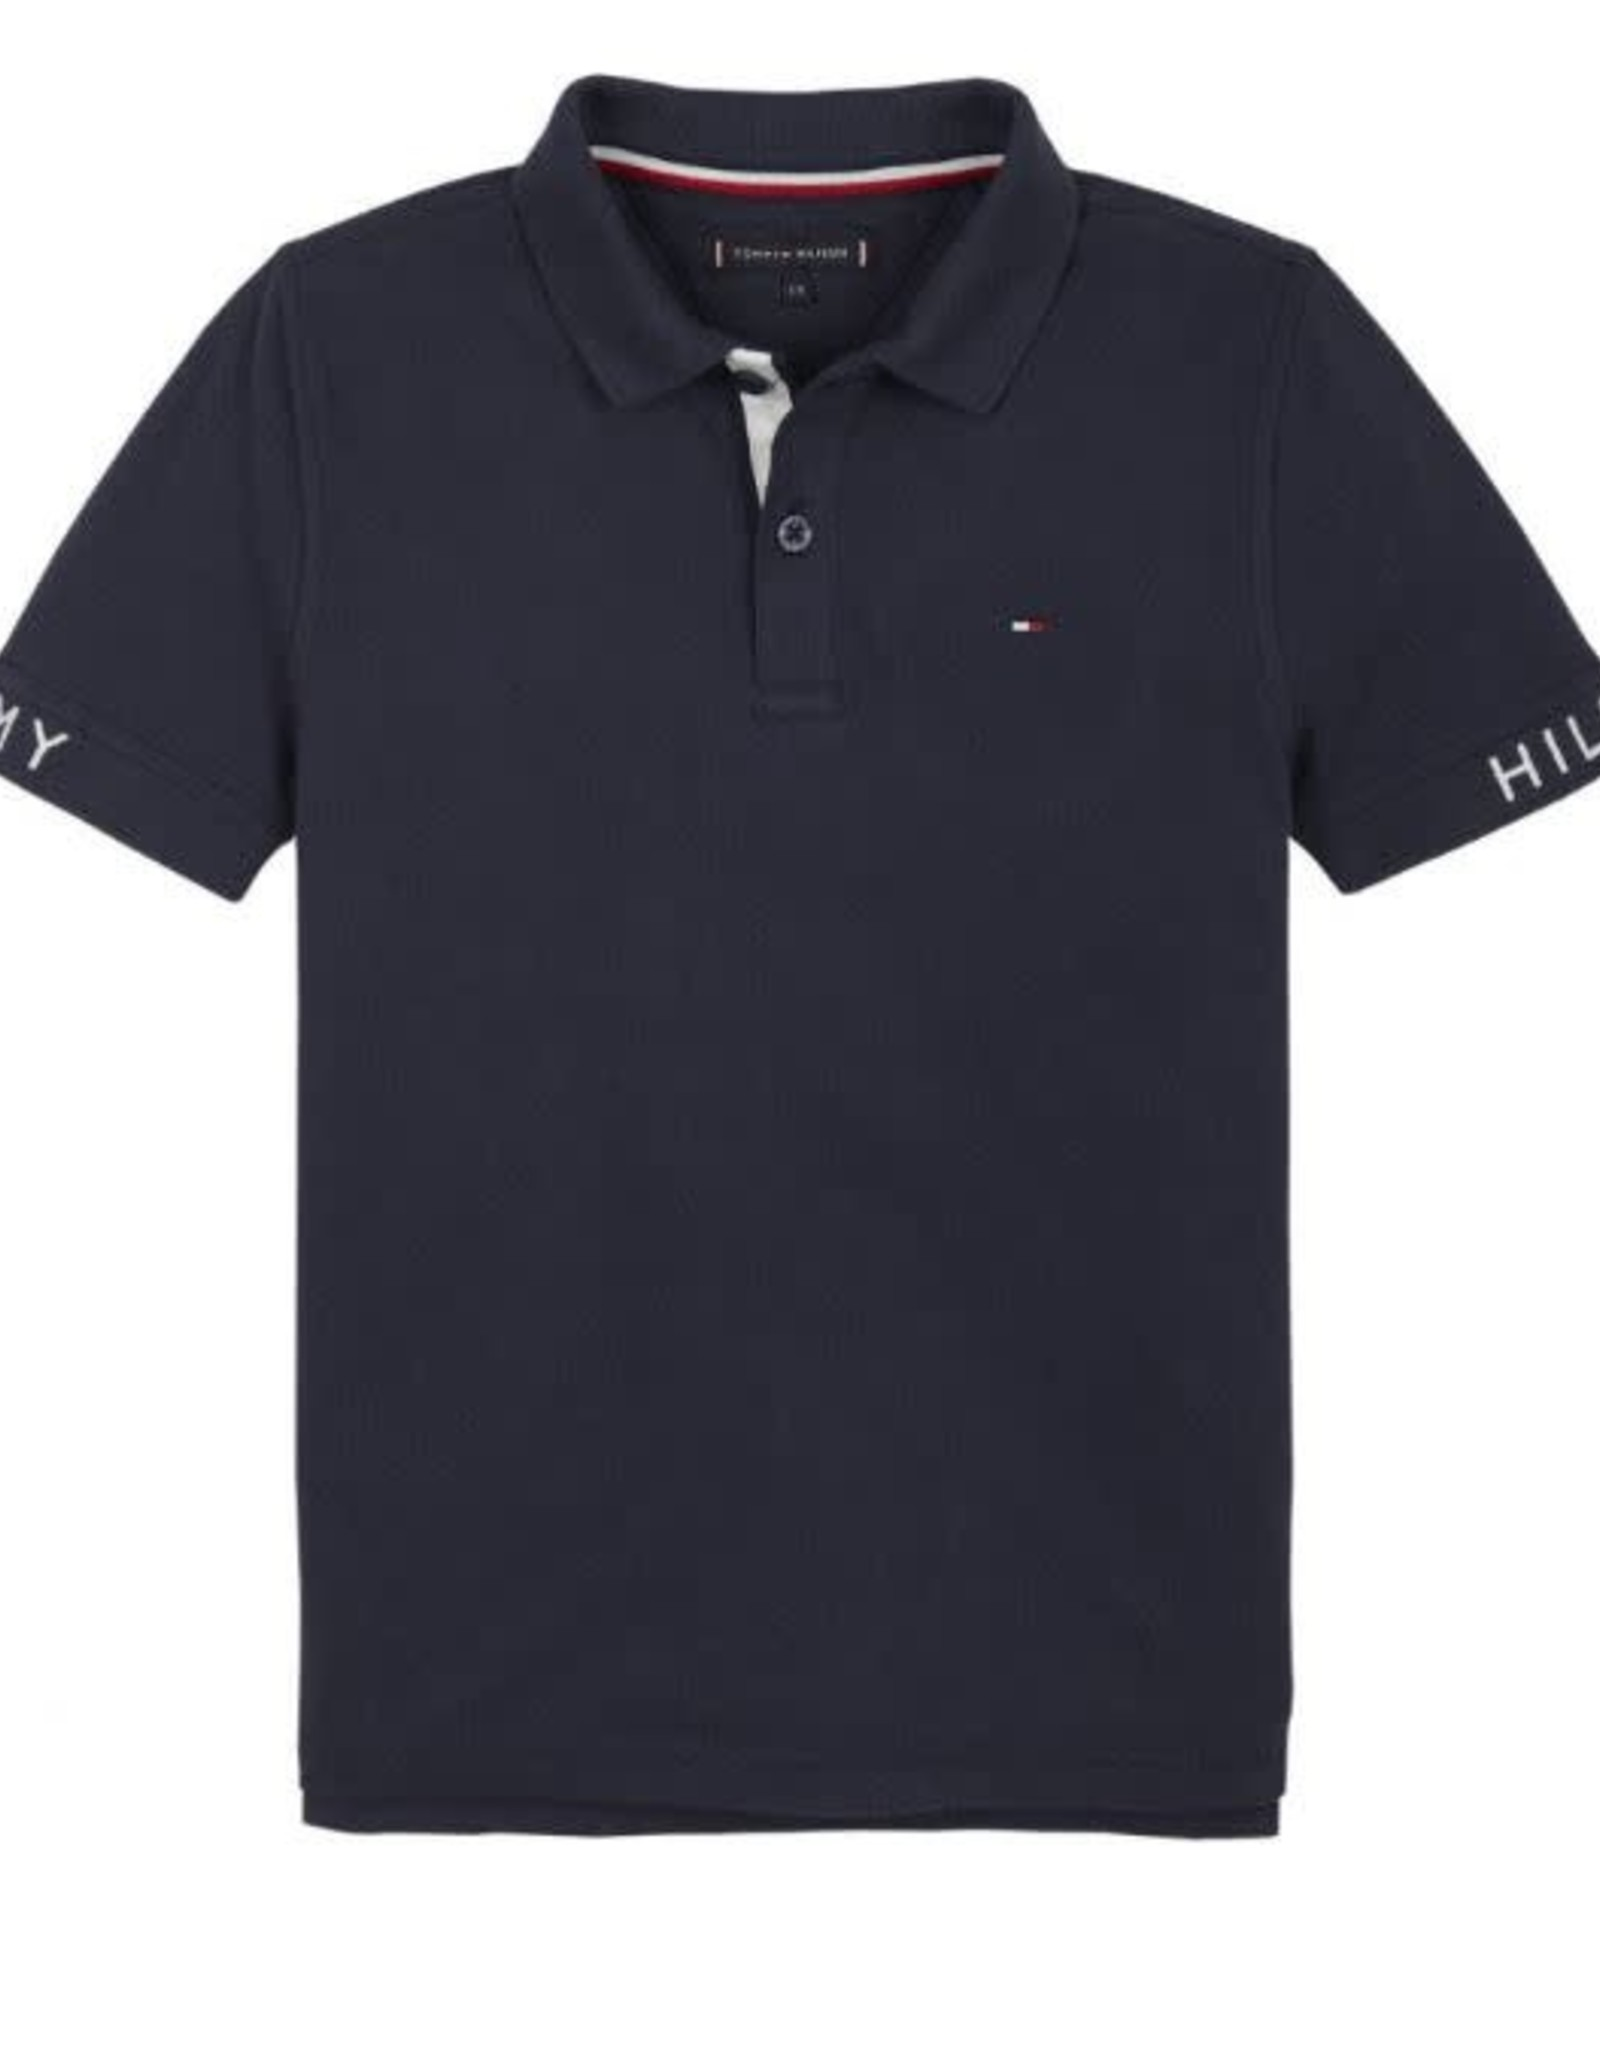 Tommy Hilfiger Sleeve Text Polo S/S C87